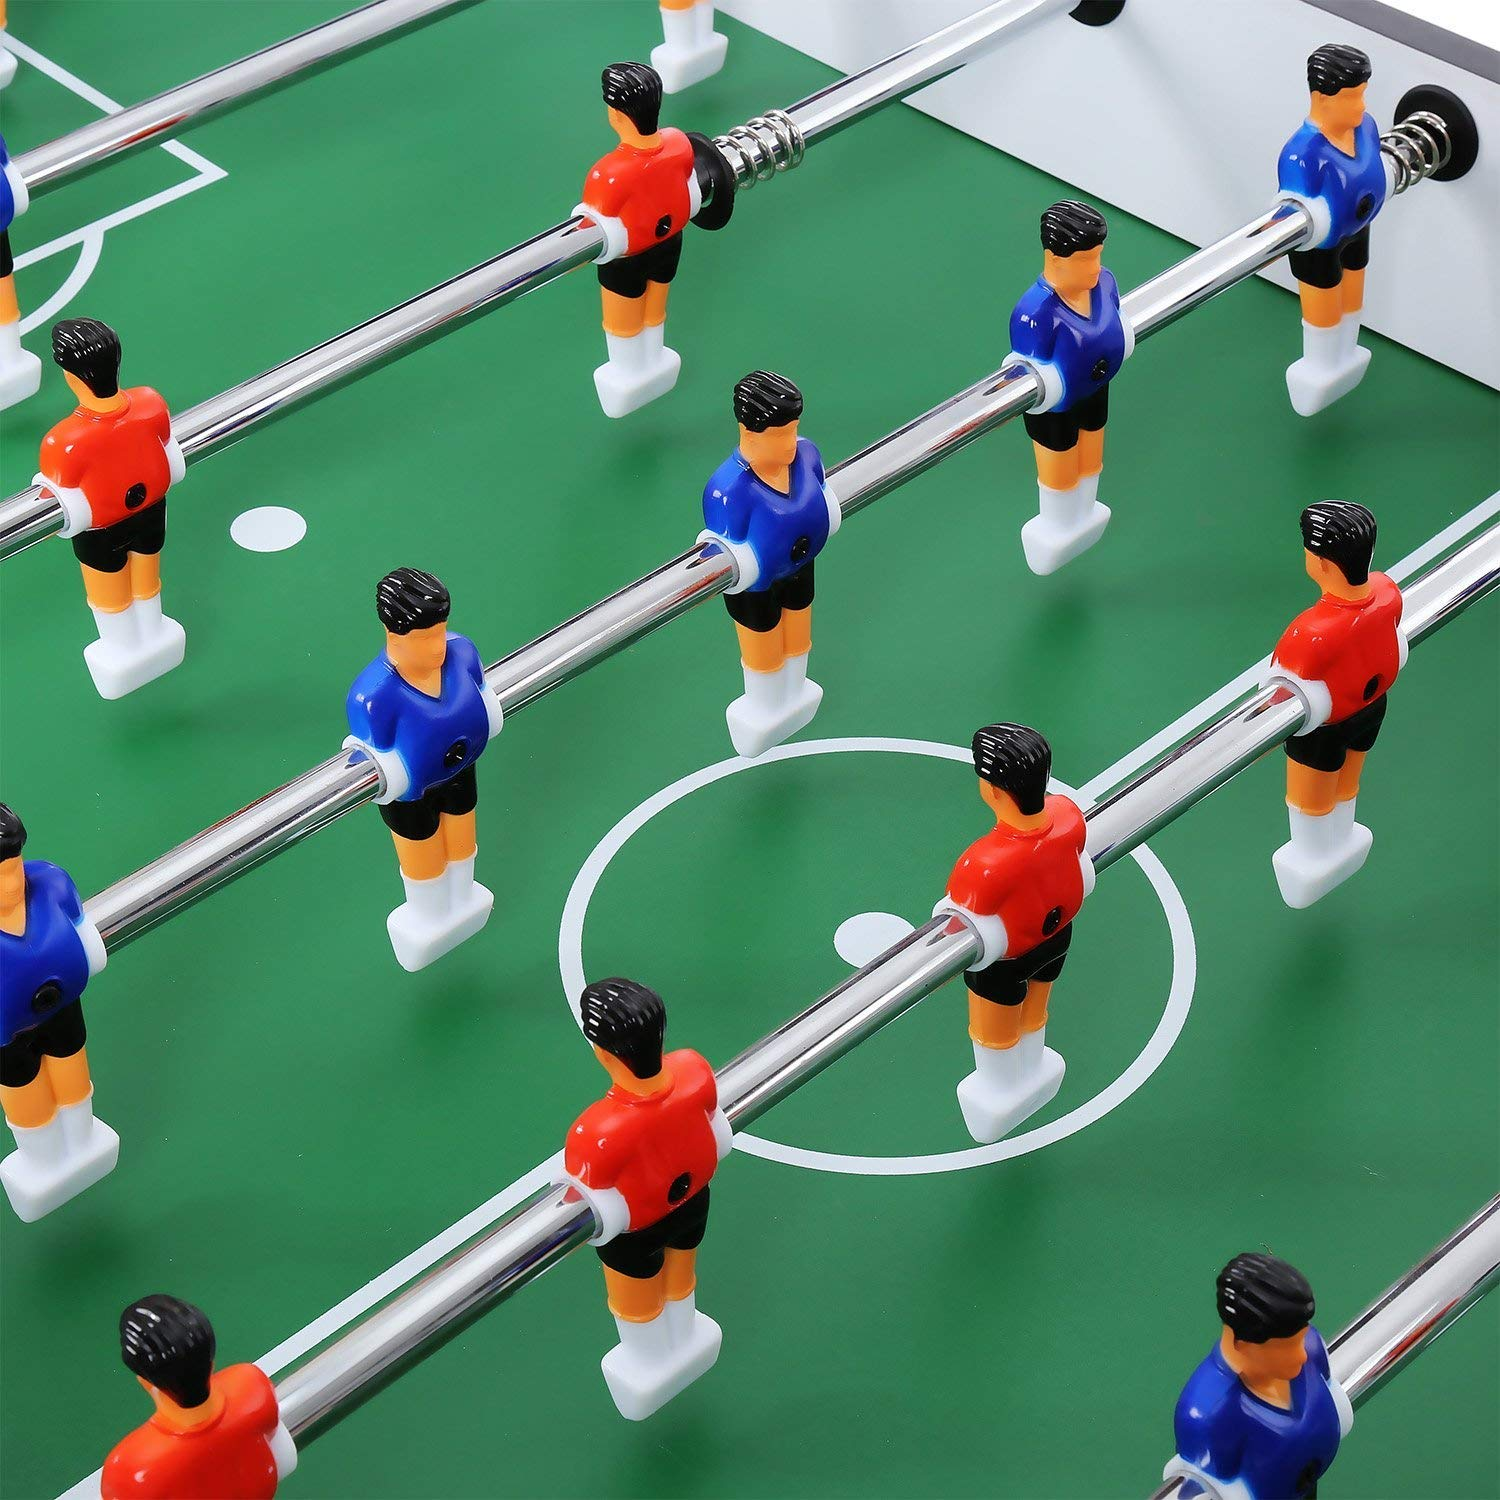 ANCHEER 48'' Foosball Table Soccer Table Arcade Game Room Football Table Sports Game for Kids& Adults- Indoor&Outdoor by ANCHEER (Image #5)